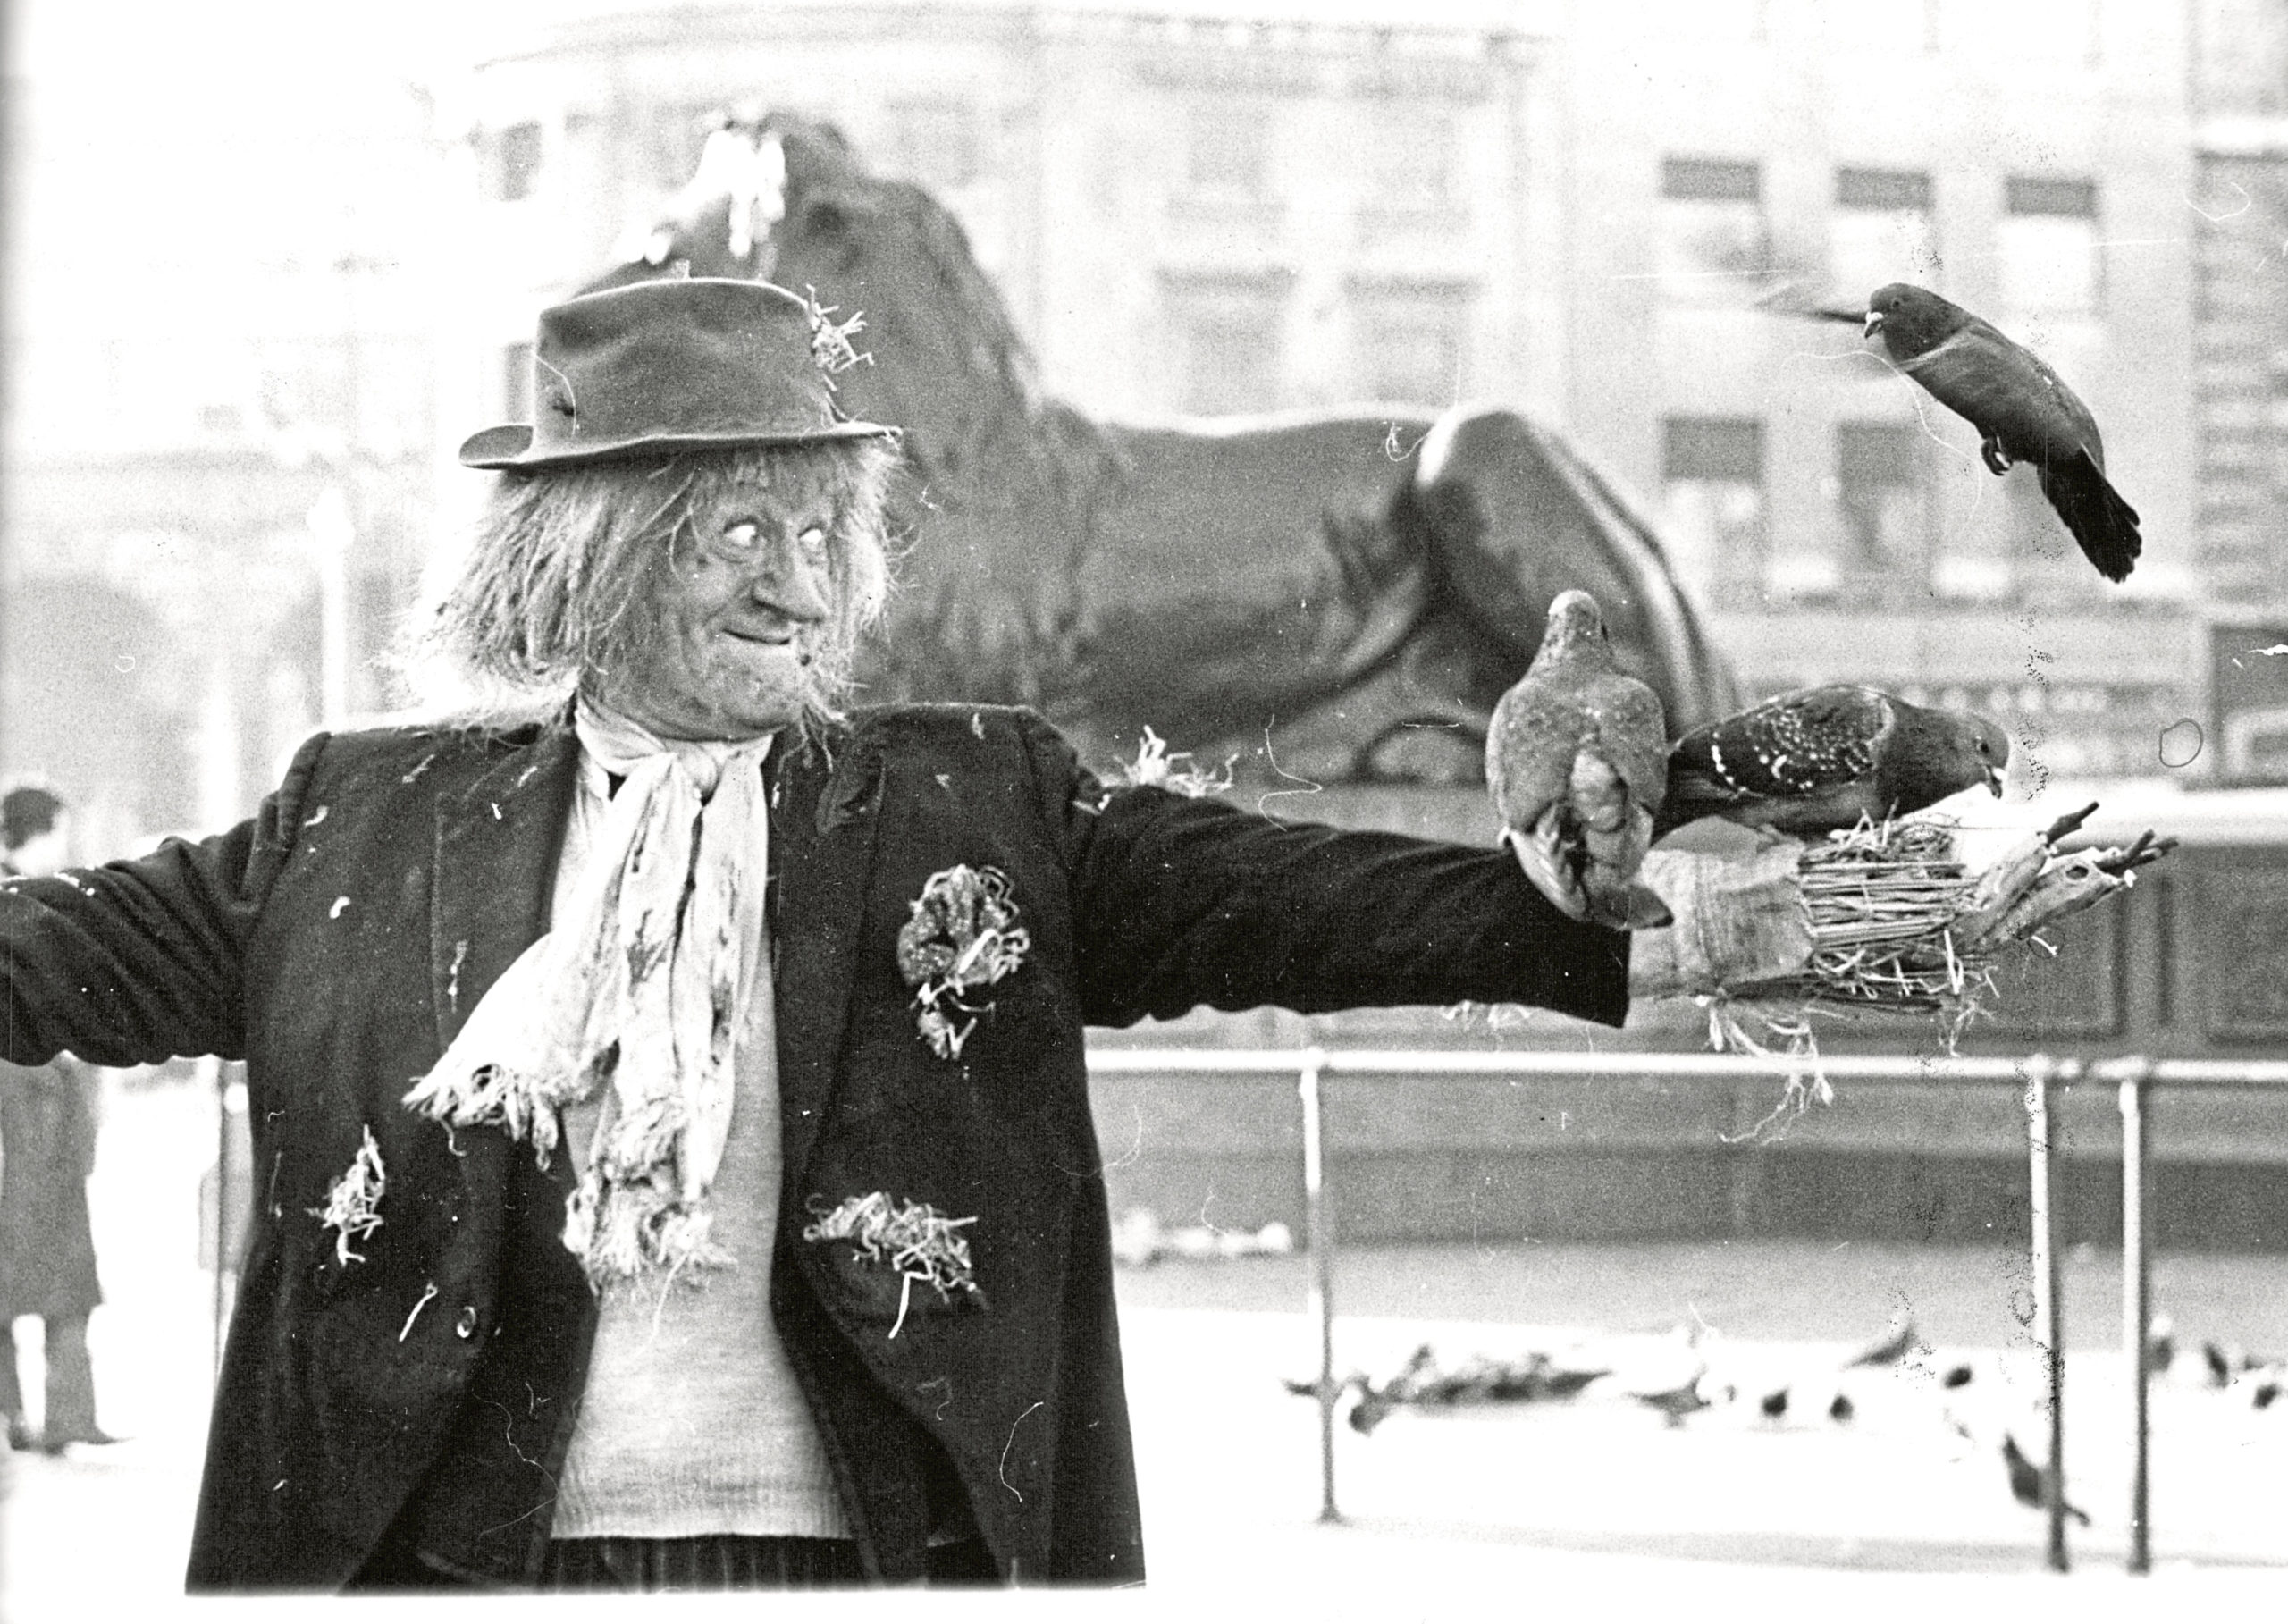 TOUSLED EXAMPLE: Scarecrow Worzel Gummidge was known for his straw hair and less than well groomed appearance